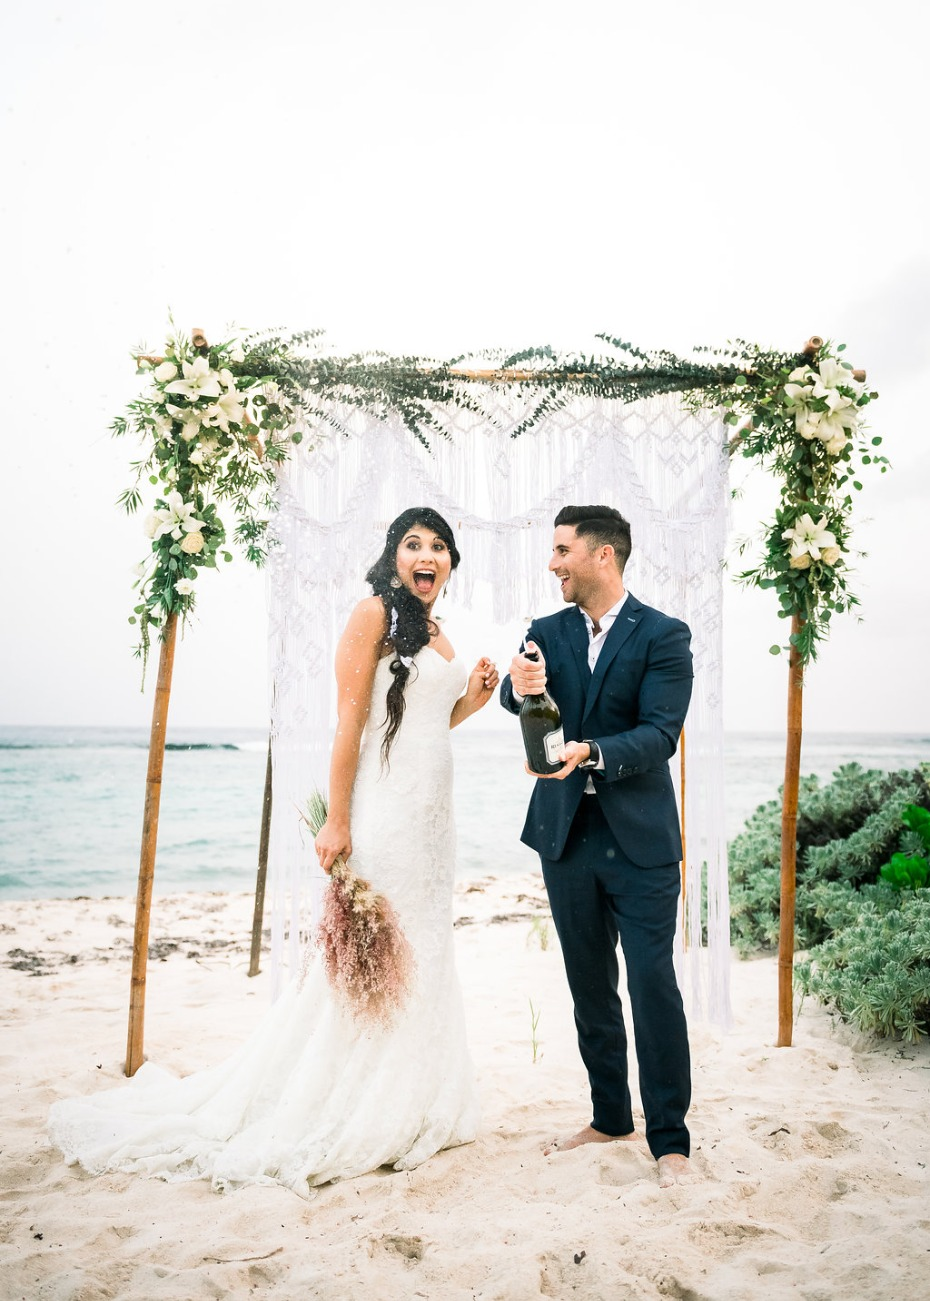 Cayman Island Beach Wedding Bride and Groom Popping Champagne